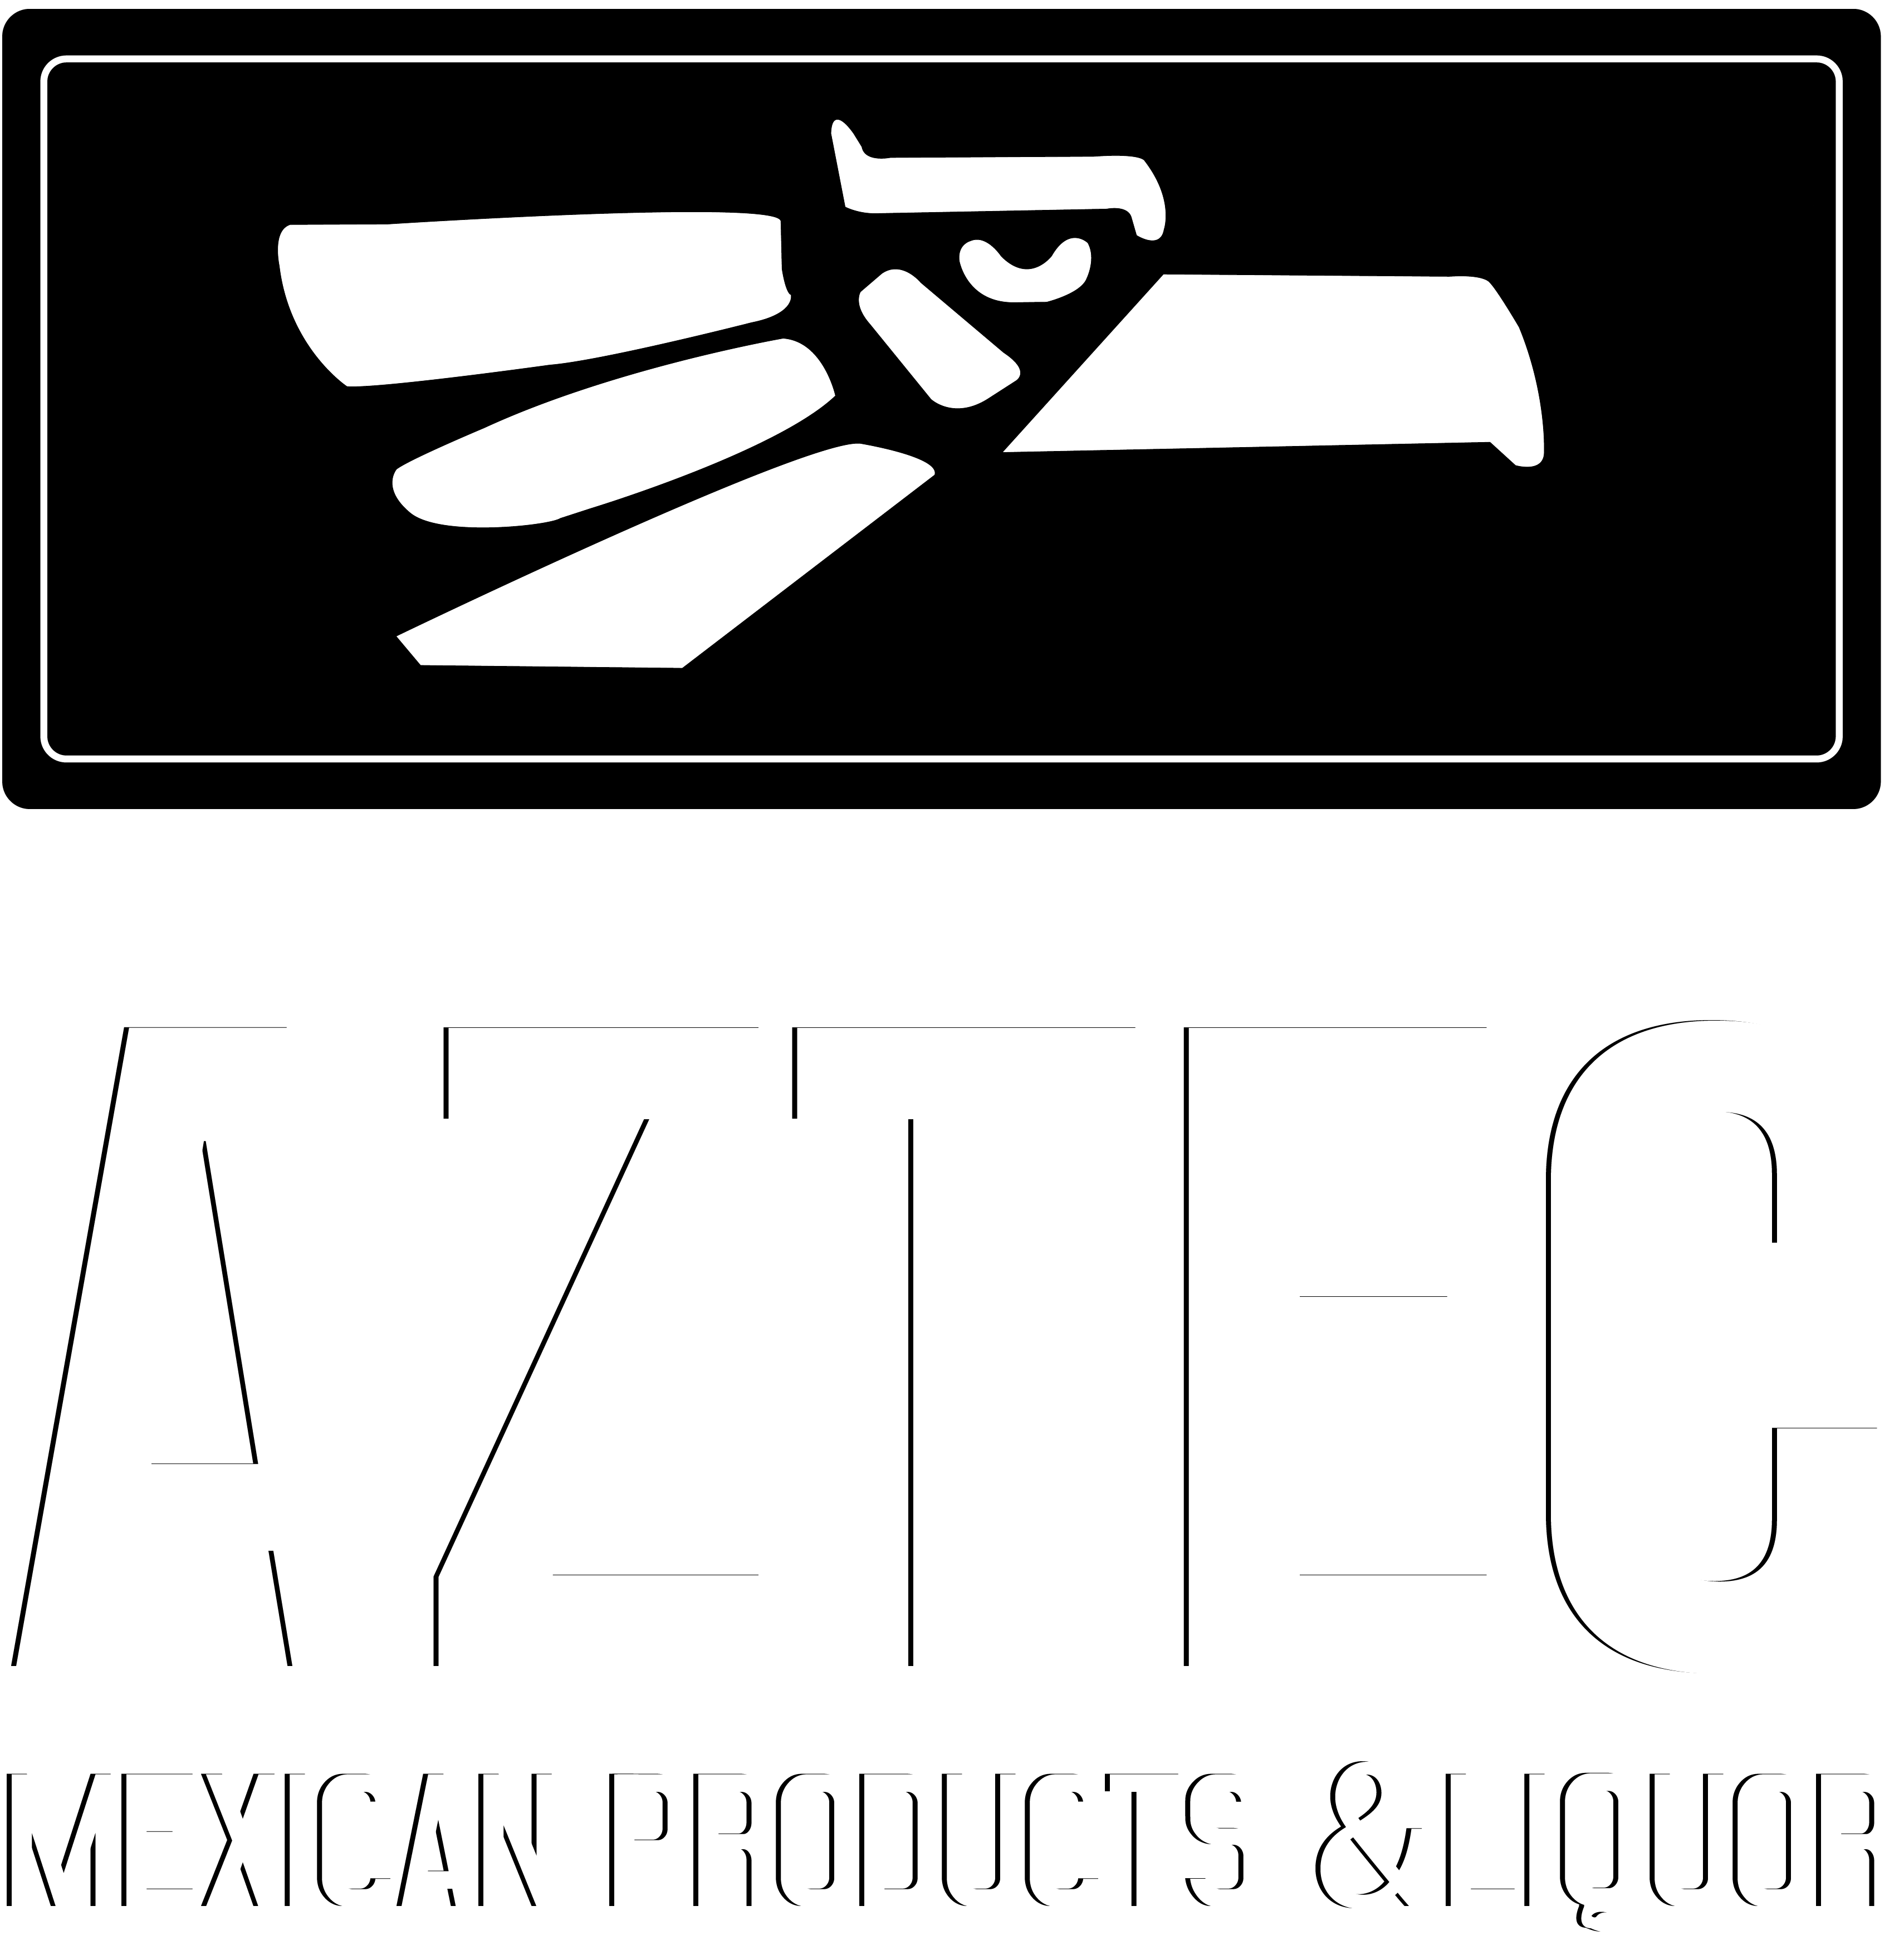 Mexican Food and Groceries | Aztec Wholesale Mexican Food & Liquor